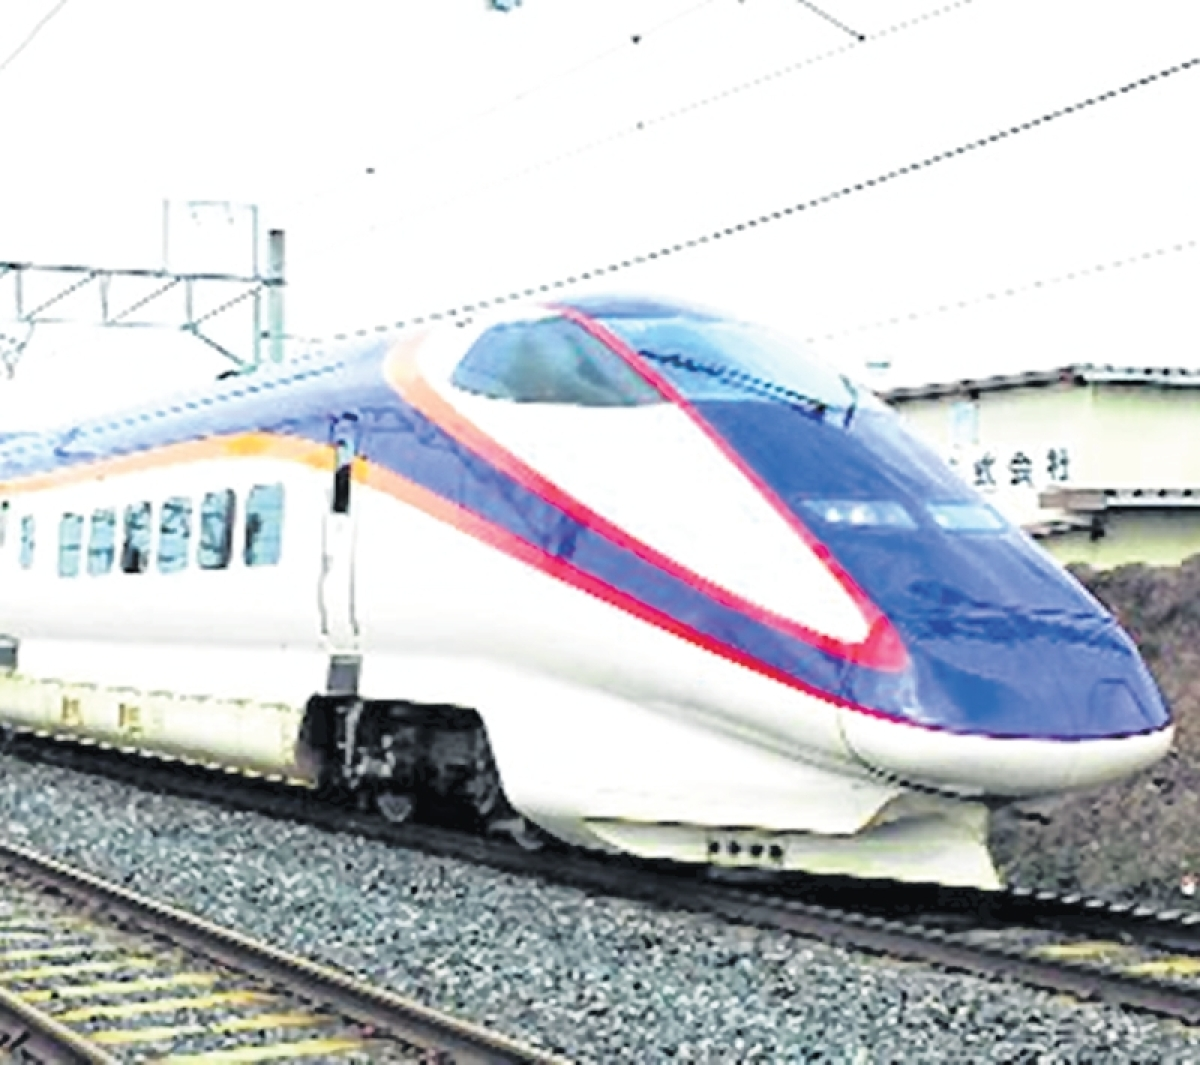 Mumbai-Ahmedabad bullet train: Bombay High Court refuses to stay land acquisition proceedings